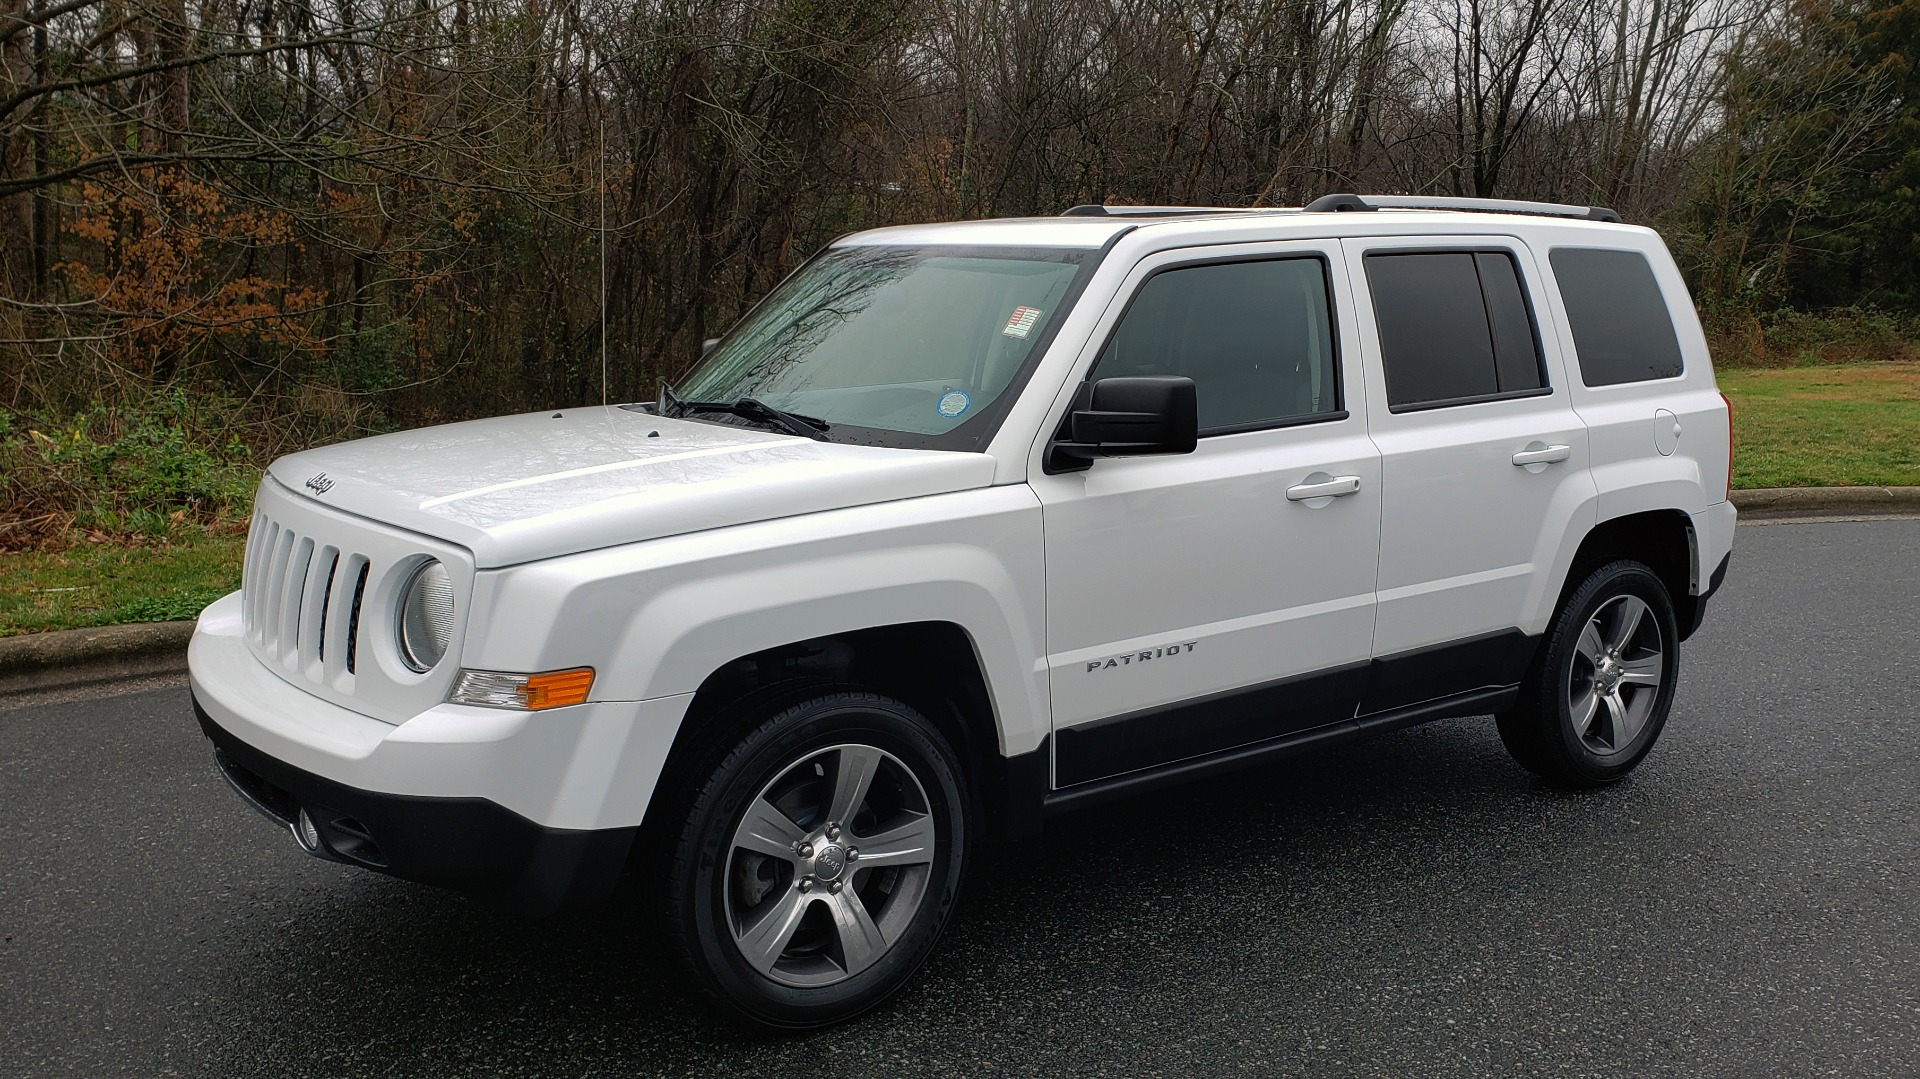 Used 2016 Jeep PATRIOT HIGH ALTITUDE EDITION 4WD / SUNROOF / 4-CYL / 6-SPD AUTO for sale $14,695 at Formula Imports in Charlotte NC 28227 1